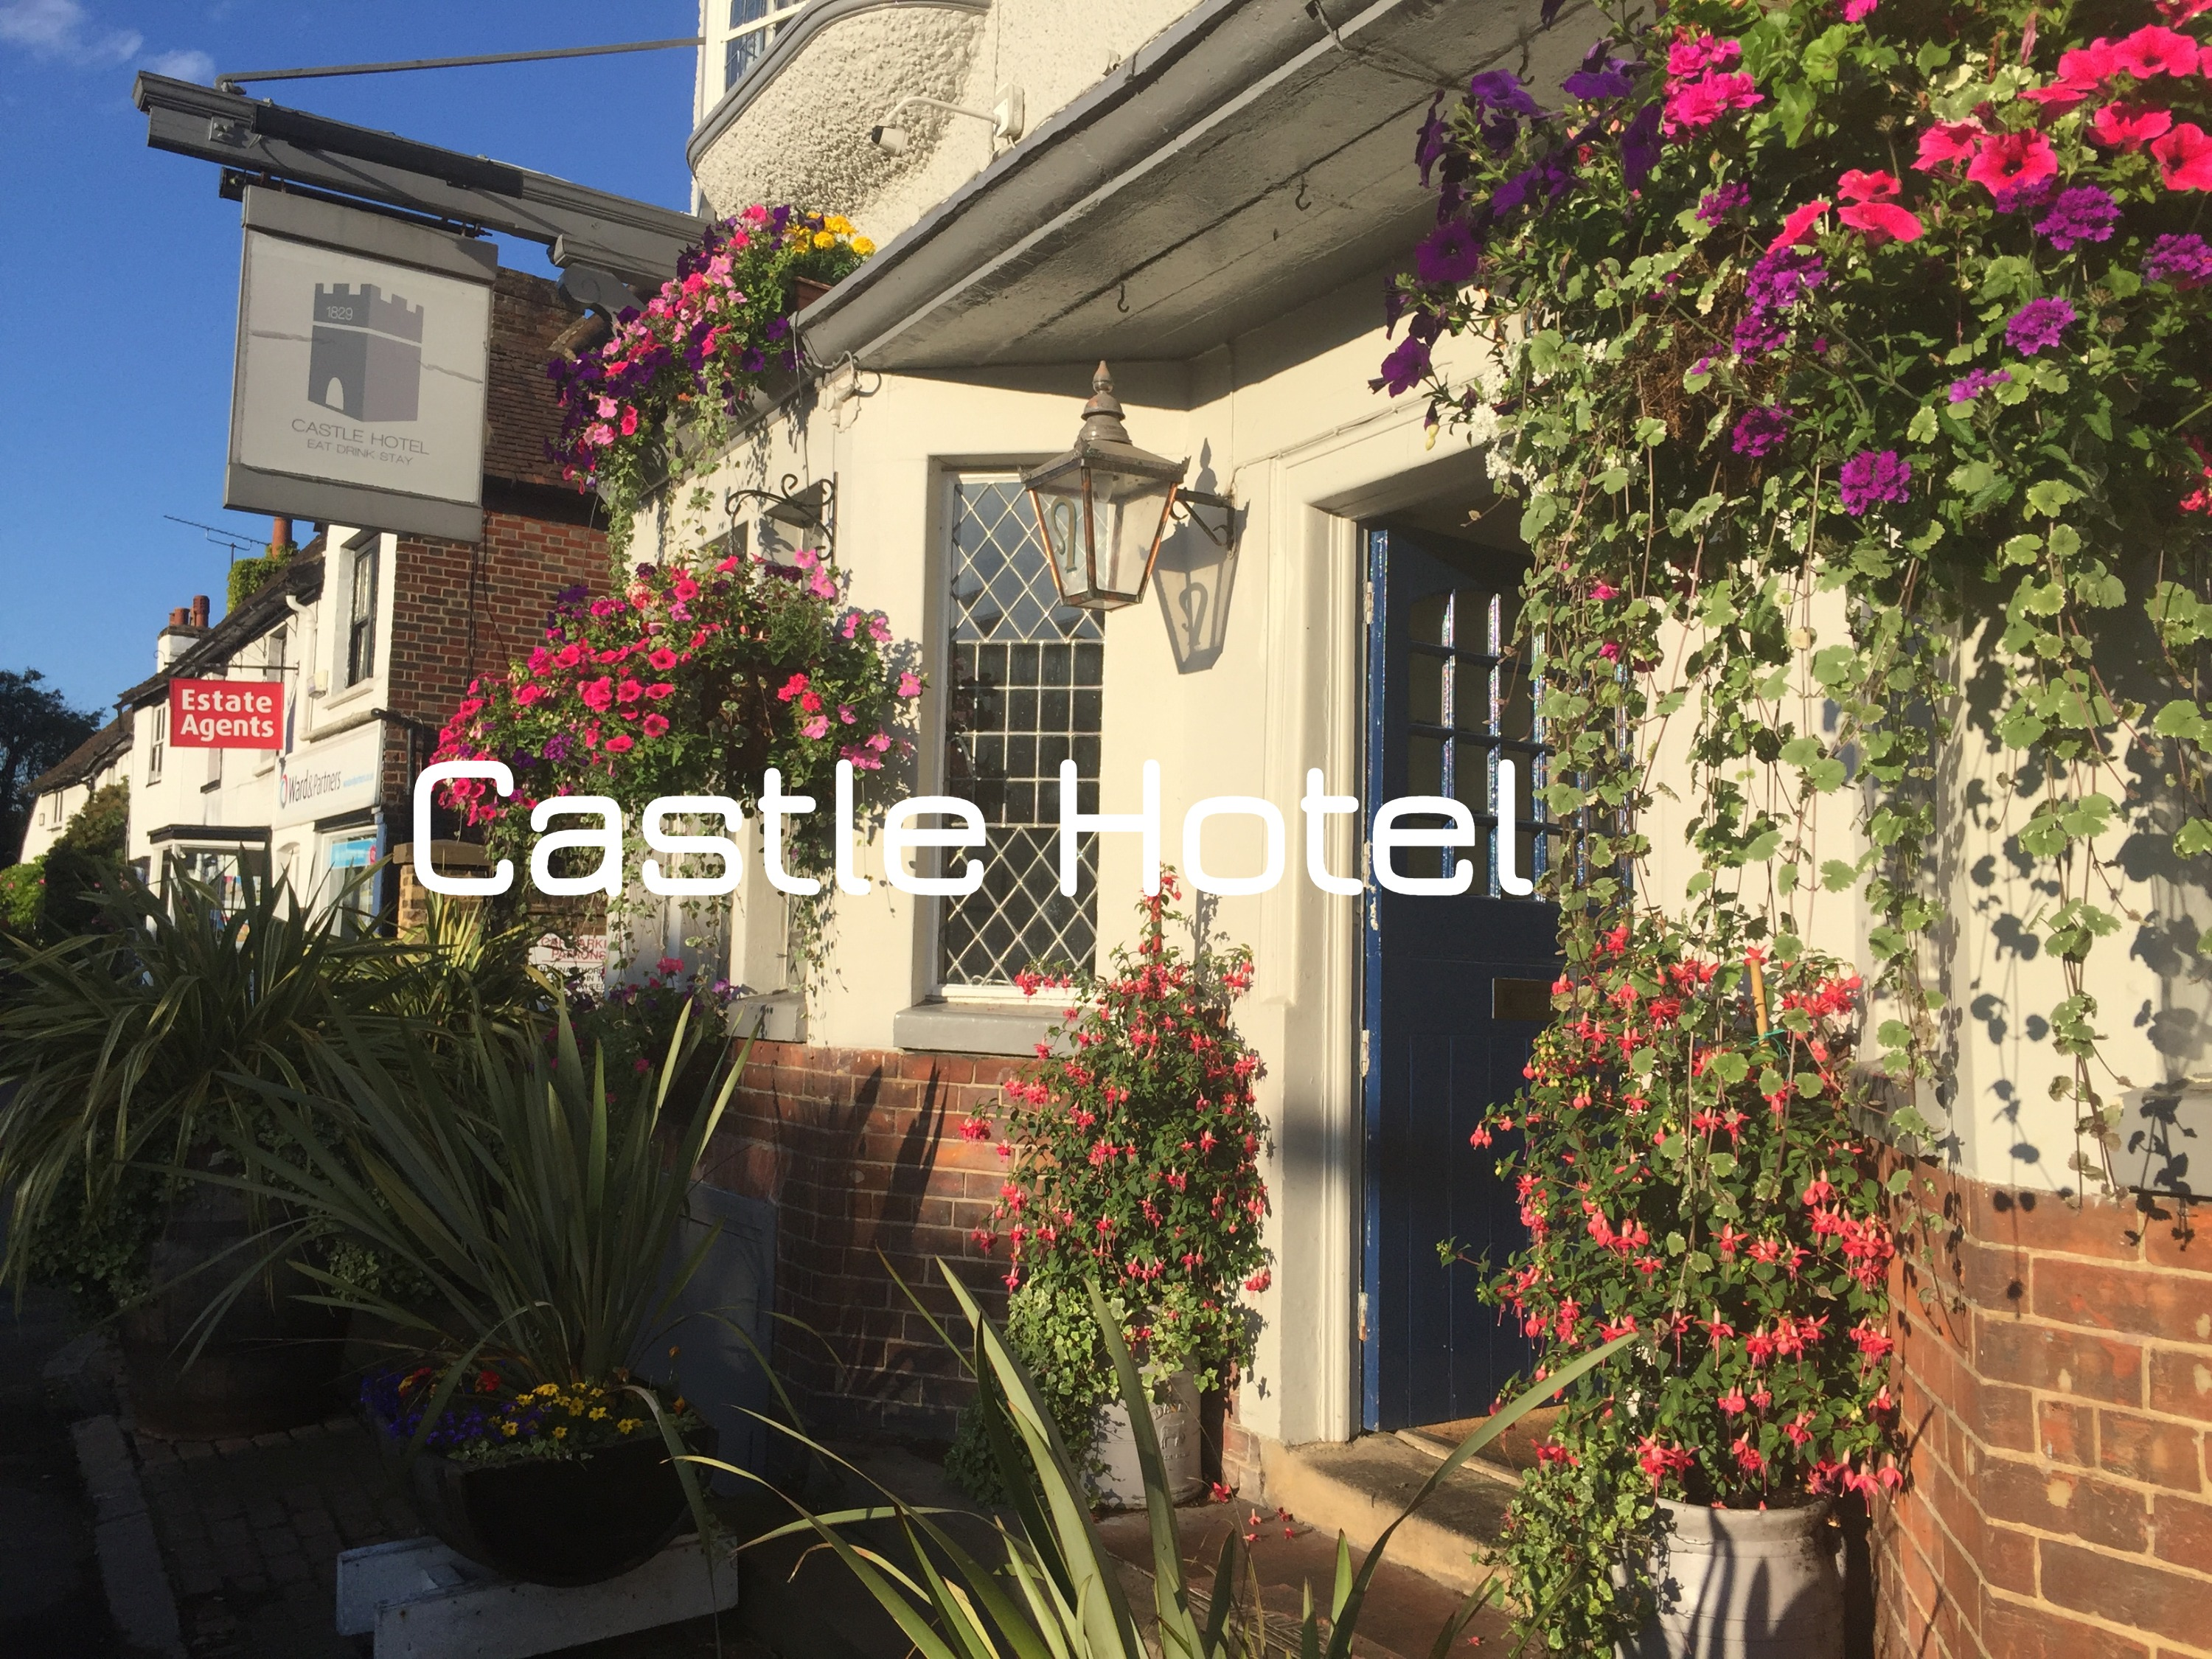 Castle Hotel, Eynsford Village